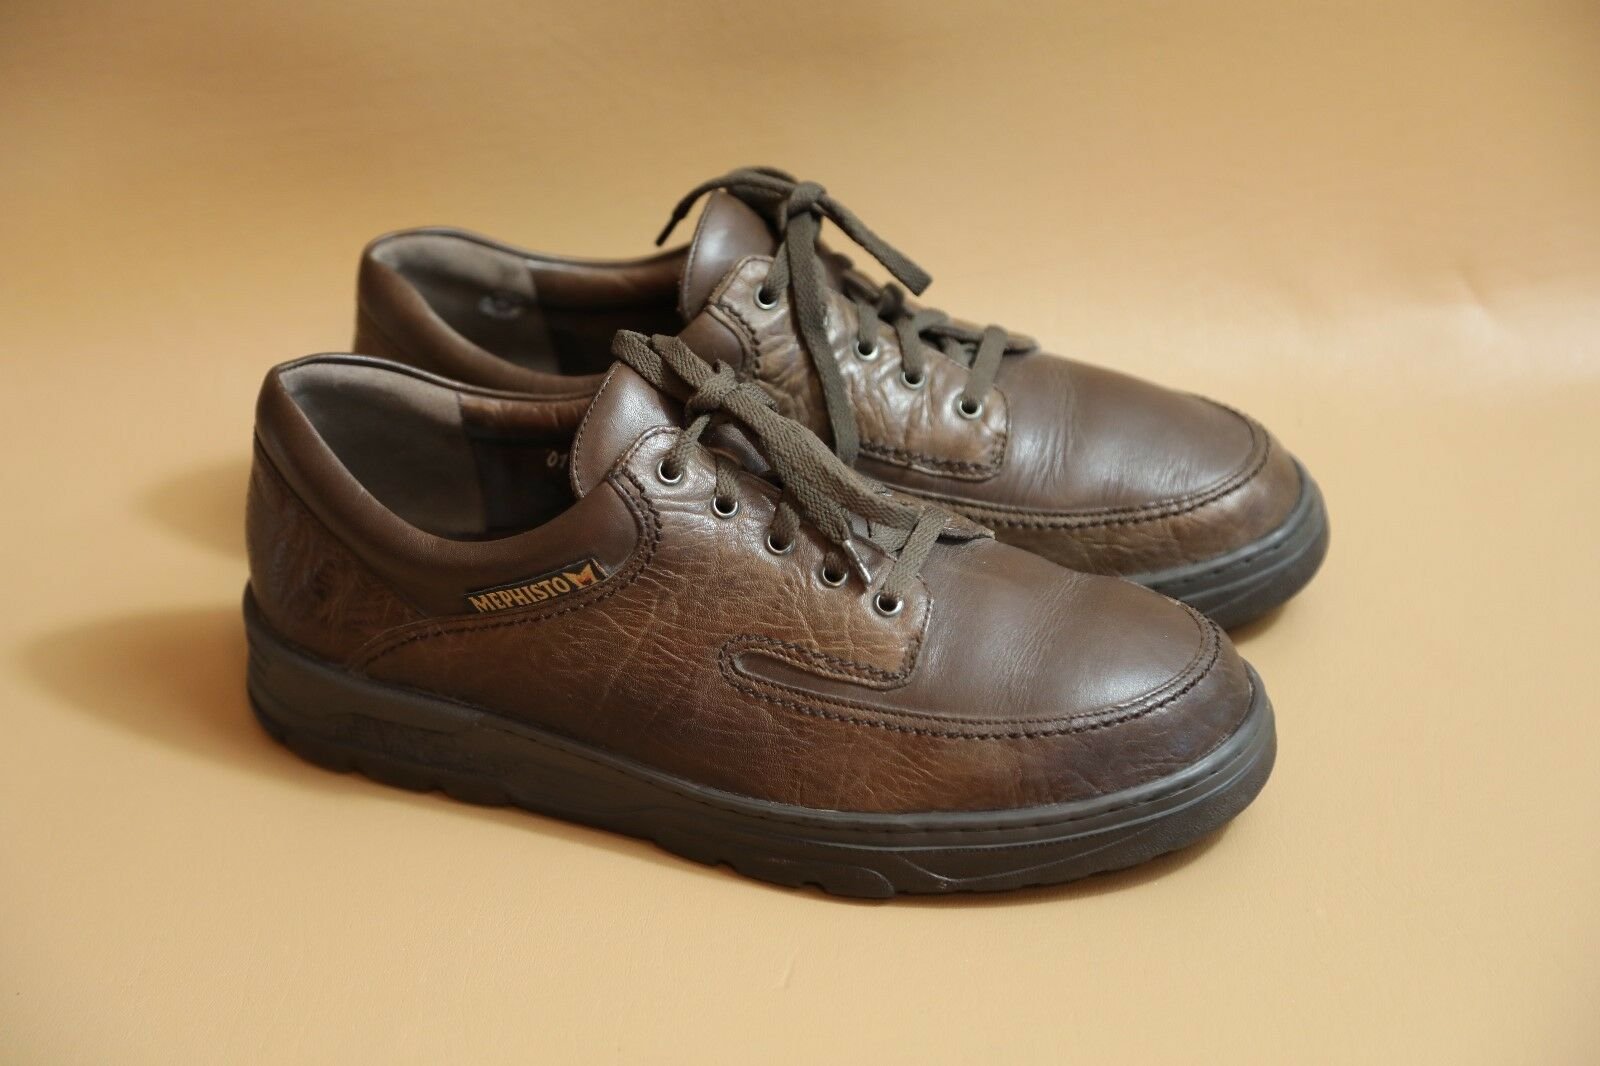 MEPHISTO Air bag System 10 City Hiker Oxfords Size 8.5